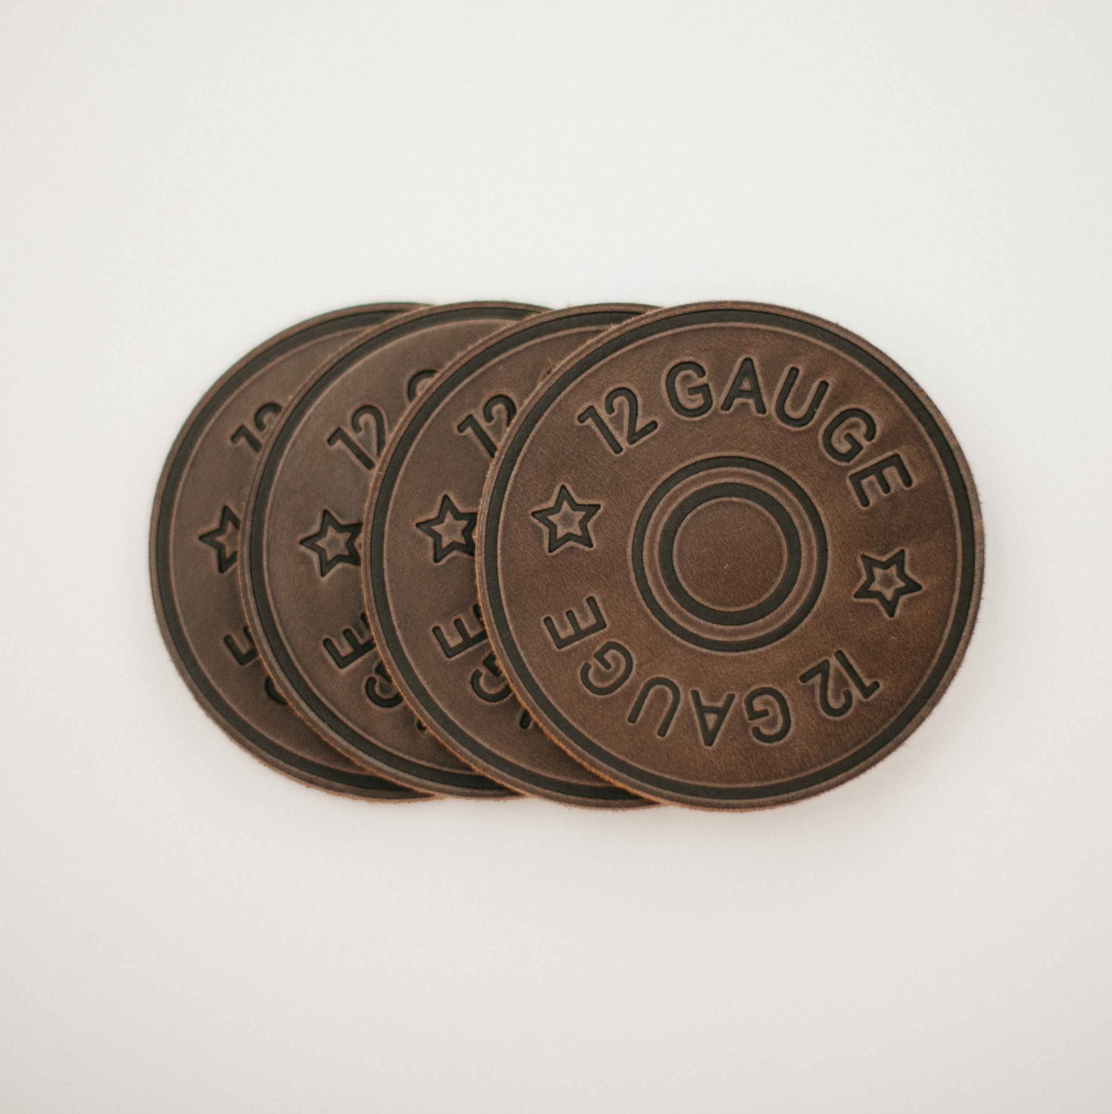 Clayton and Crume Clayton and Crume Coasters 12 Gauge